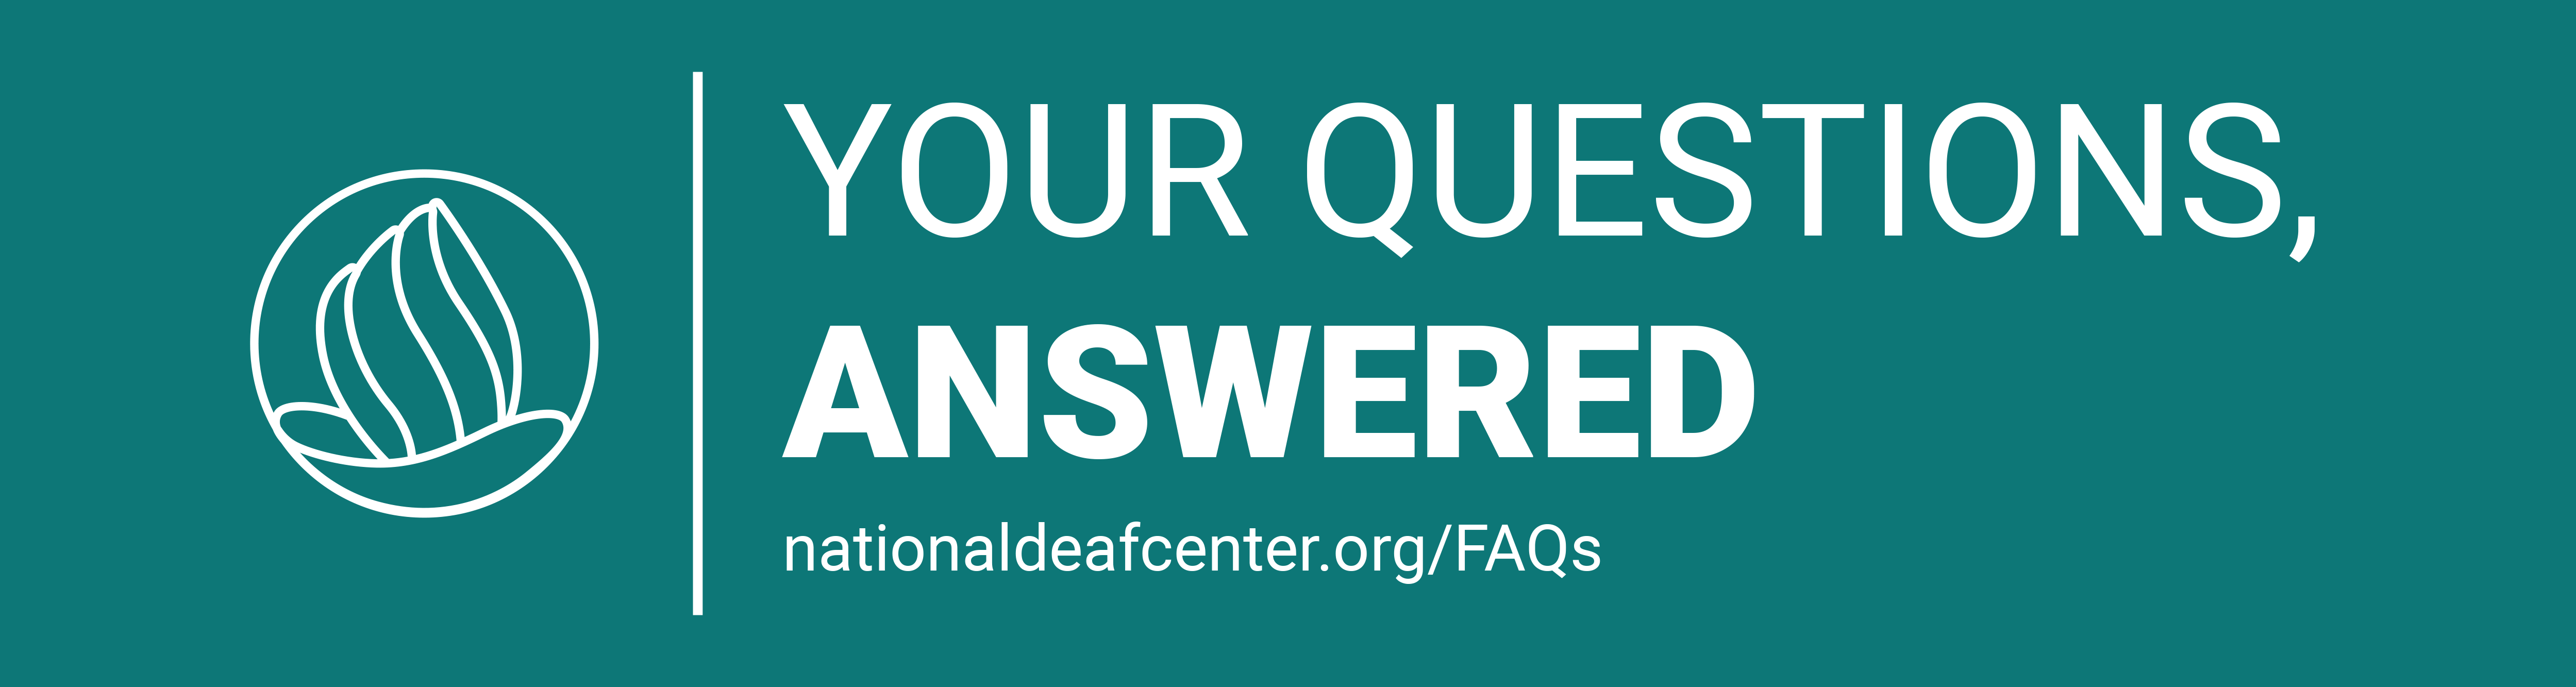 Teal background with NDC logo on left and Text: Your Questions, Answered. NationalDeafCenter.org/FAQs